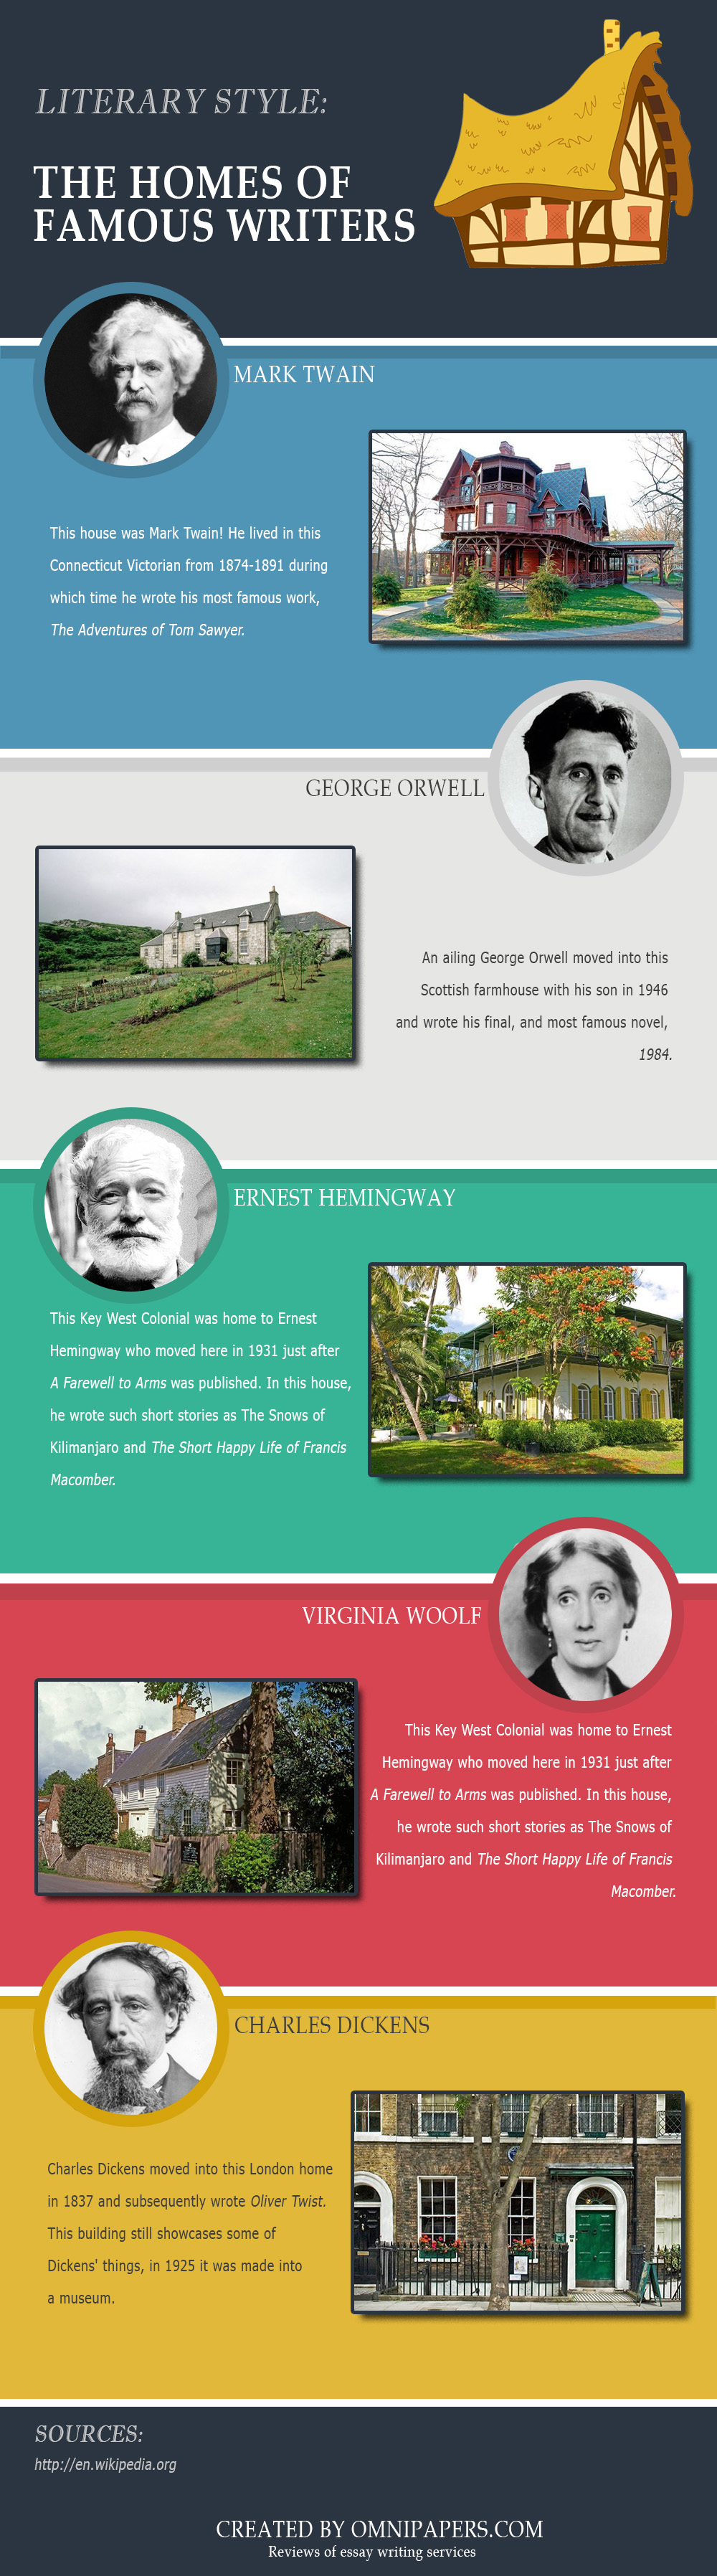 the homes of famous writers infographic ly